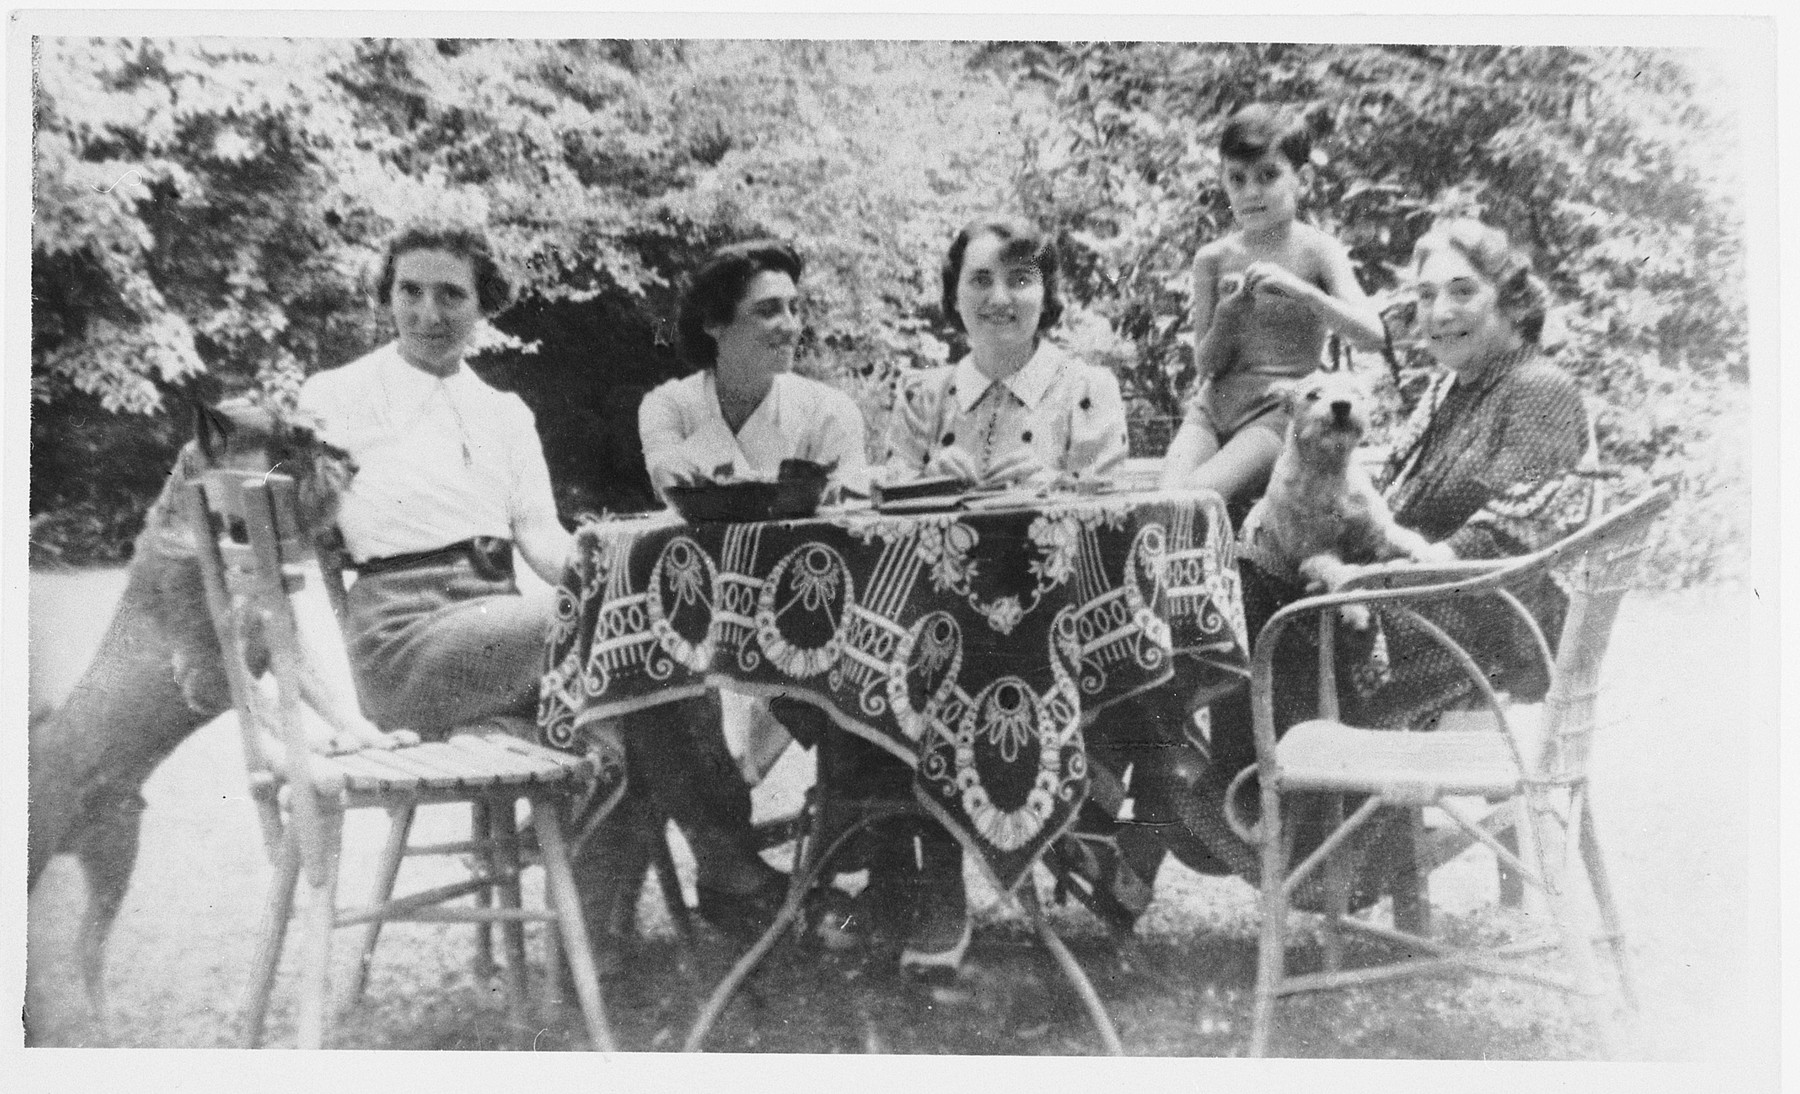 Friends and family gather around an outdoor table in Zagreb, probably 1939.  Pictured from left to right are [unknown], Edith Wohlmuth Rendi (foster mother to Heinz), Sidonie Brecher Bencic (Heinz's aunt), Heinz Brecher, and Else Wohlmuth (mother of Edith).